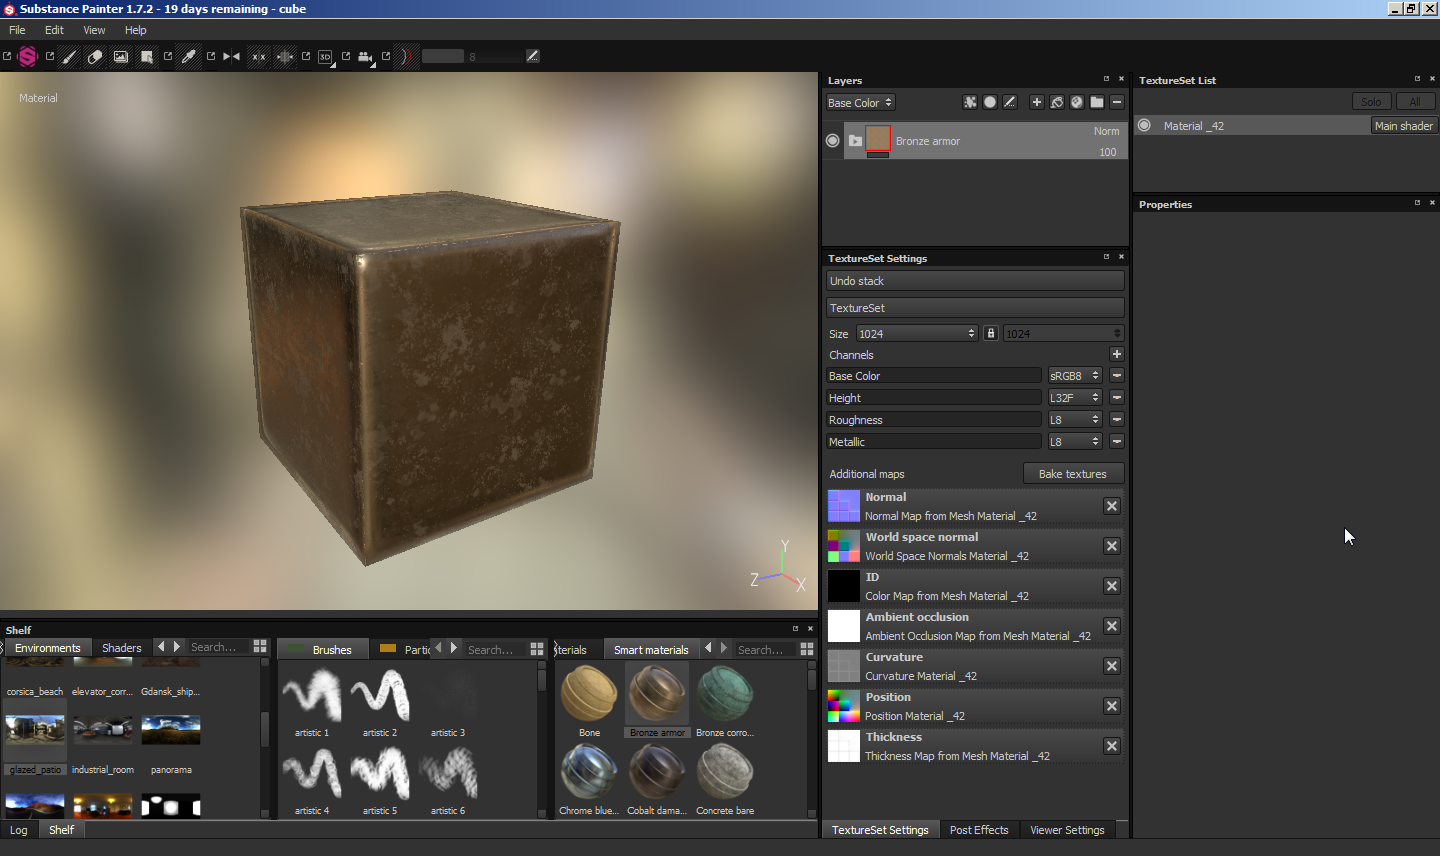 3ds Max - Substance Painter - Marmoset Toolbag normal map on